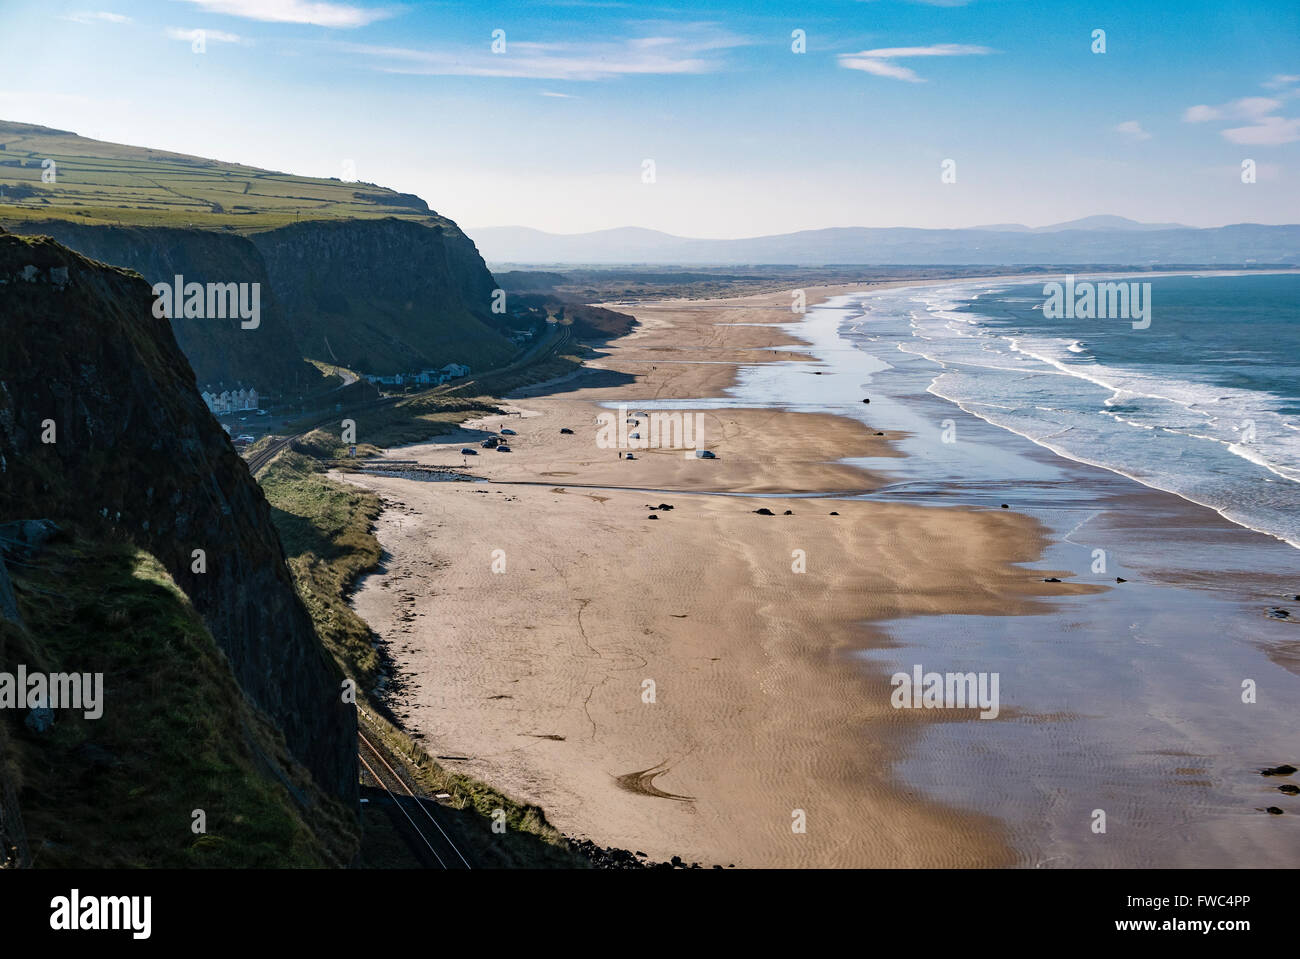 View of Downhill beach from Mussenden Temple, County Londonderry, Northern Ireland, UK, United Kingdom - Stock Image